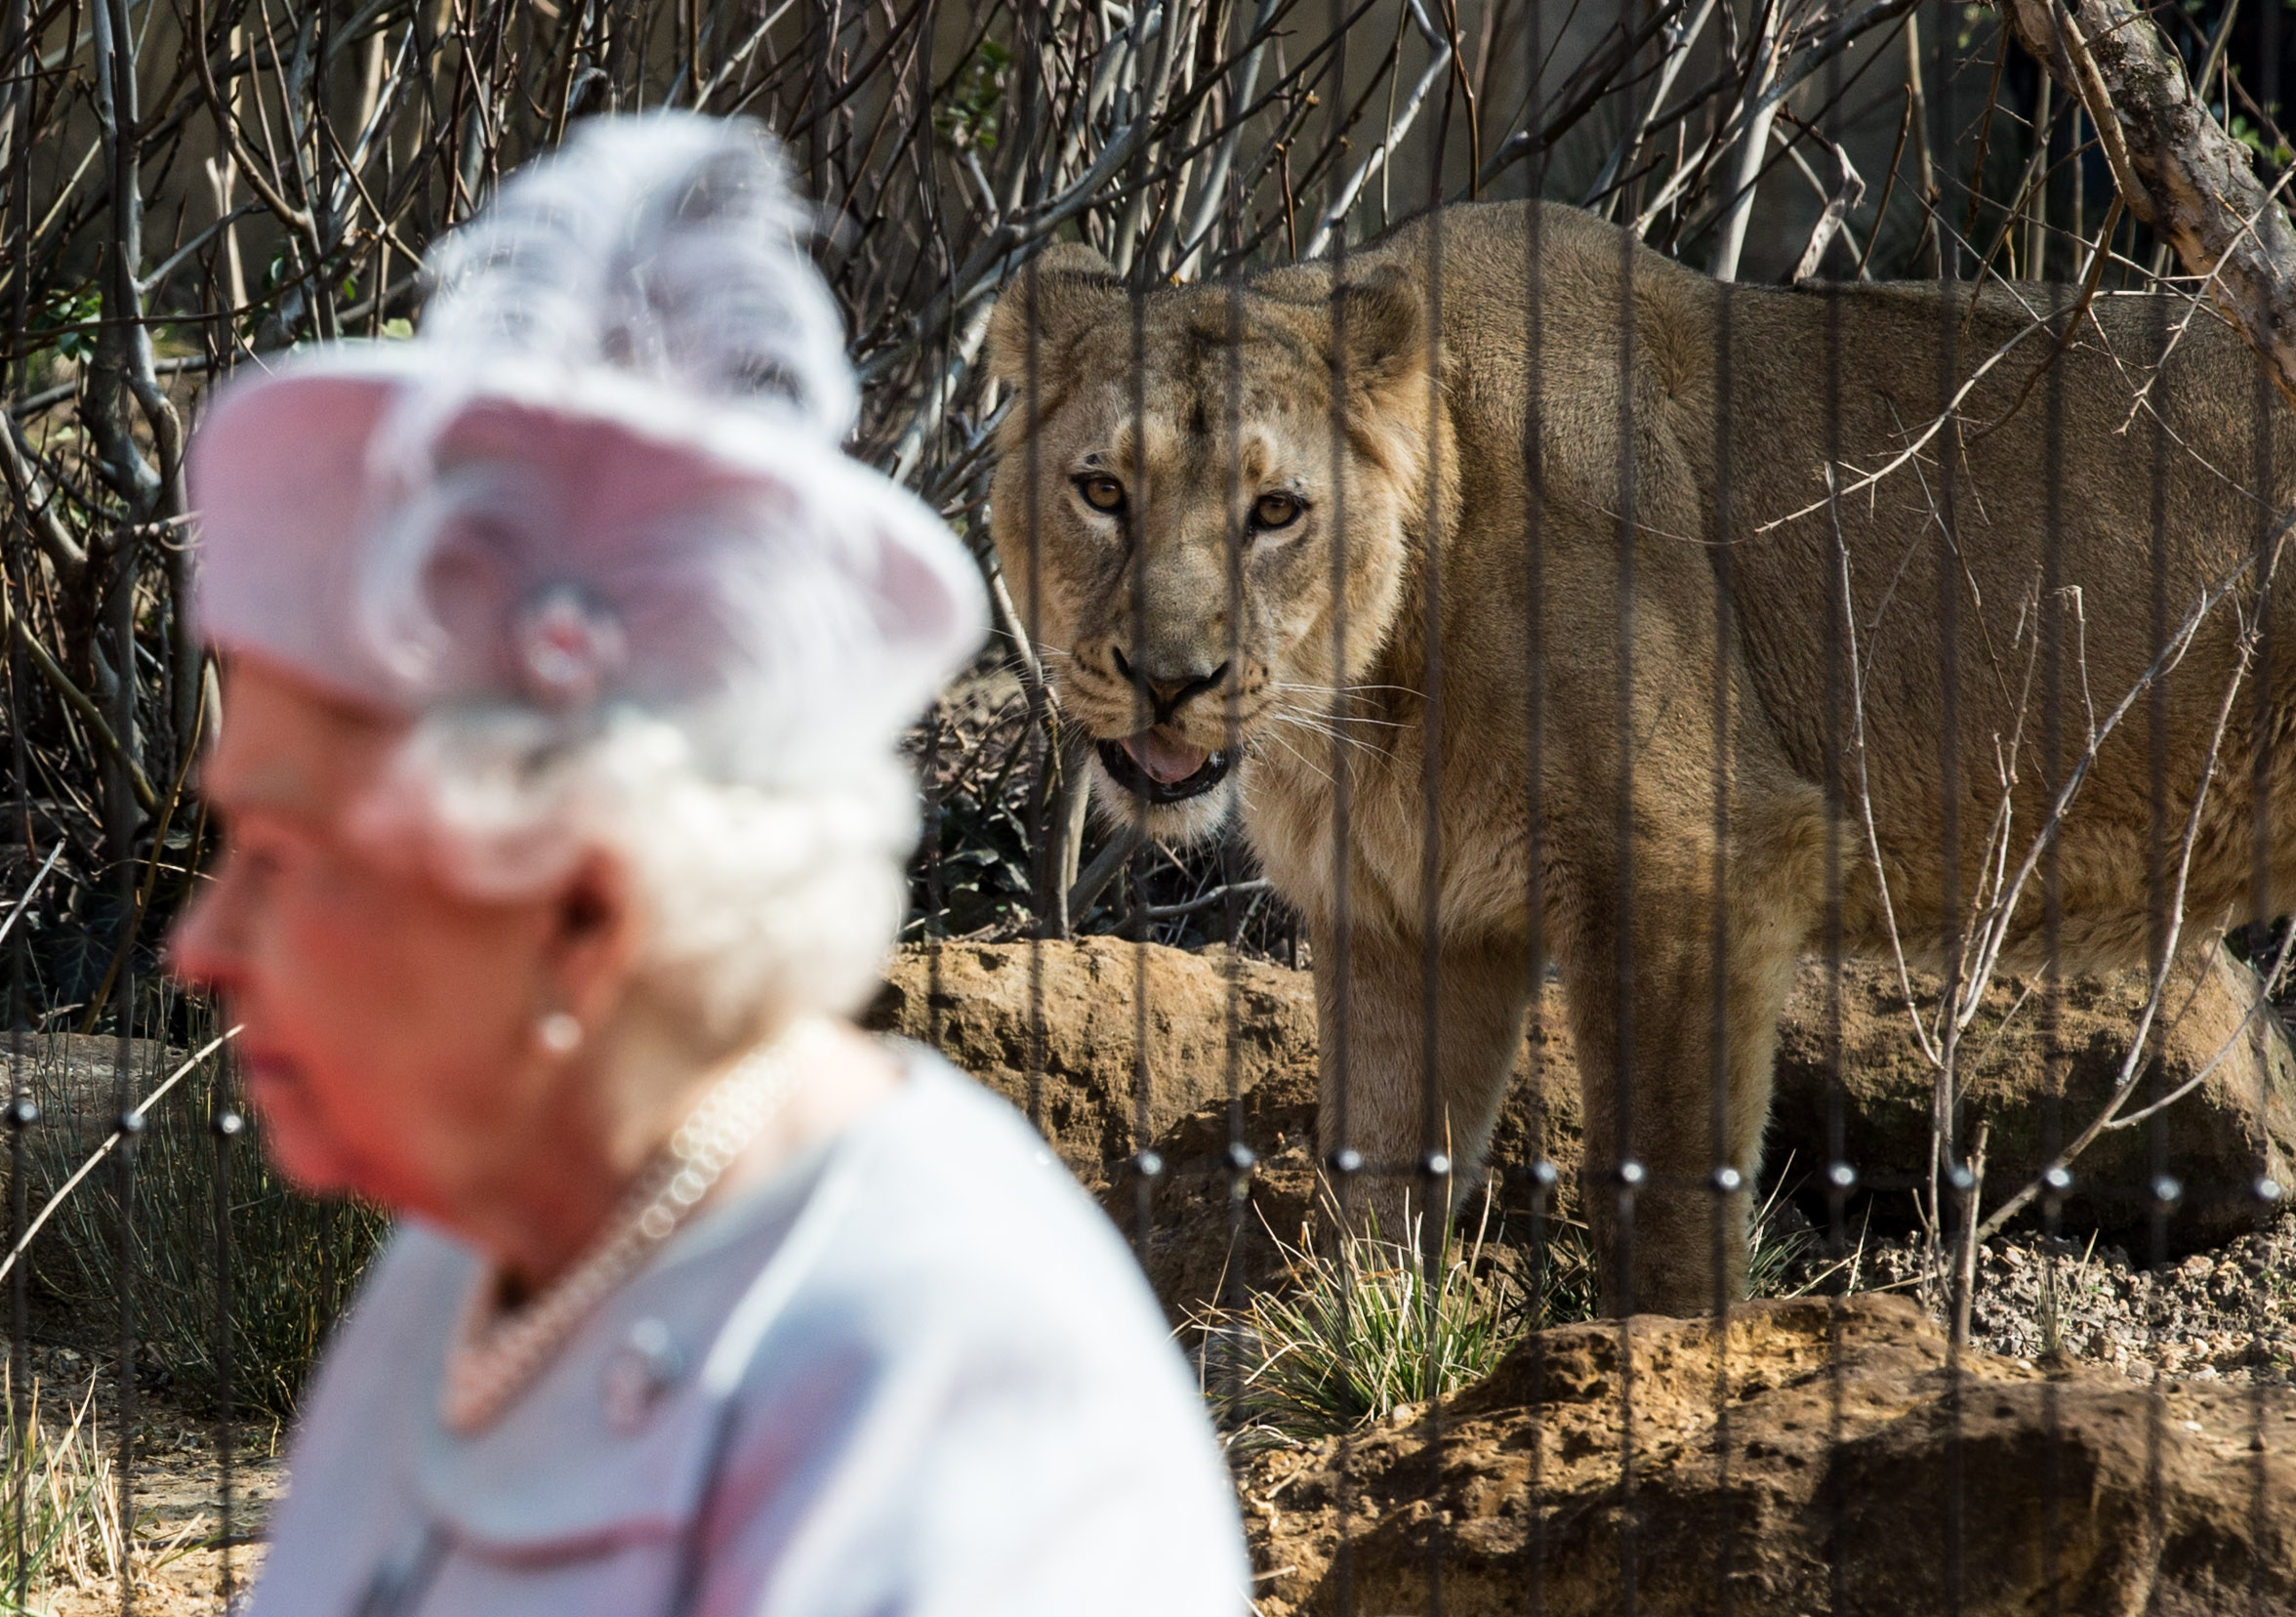 Queen Elizabeth II and an Asiatic Lion at the opening of London Zoo's 'Land of the Lions'